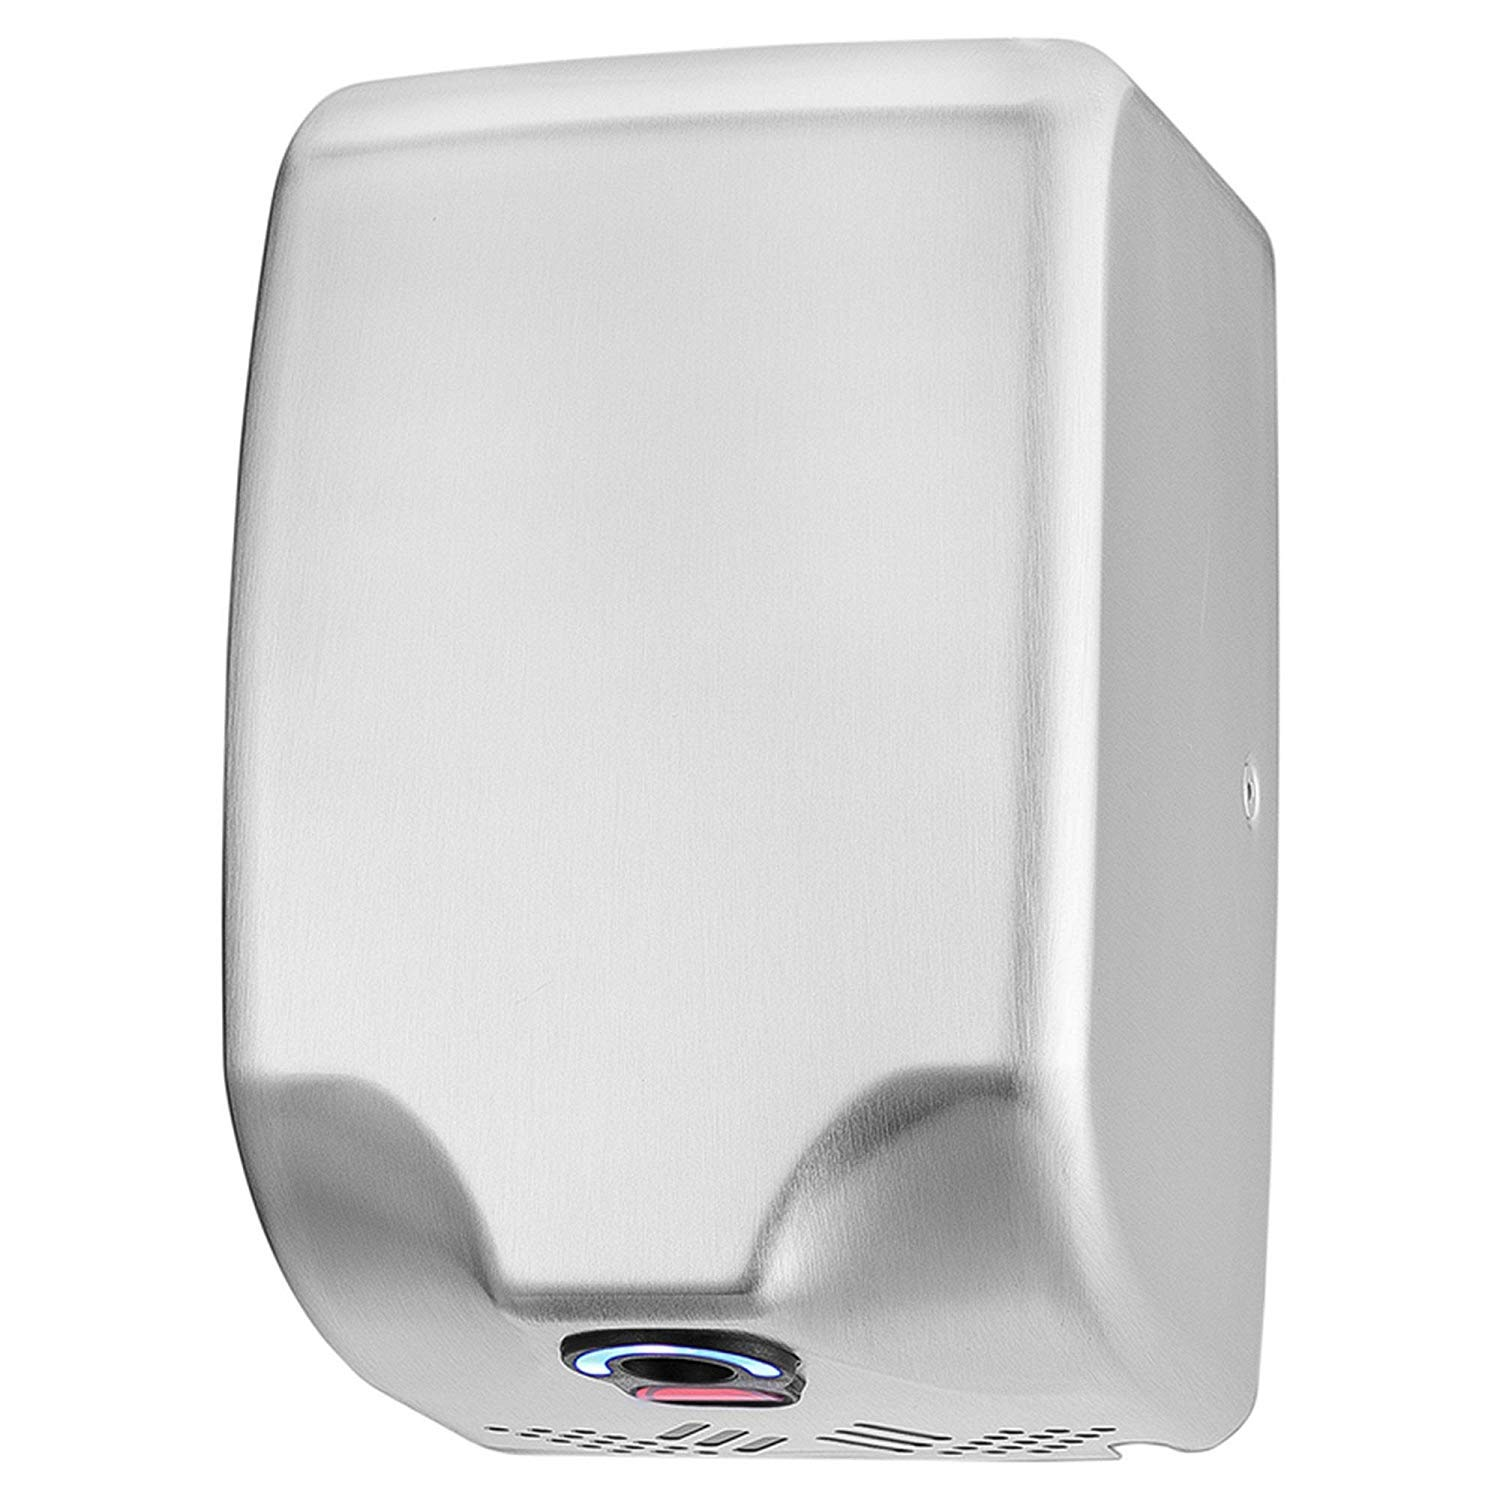 Seonsing Commercial Bathroom Hand Dryers, Stainless Steel Brushed Heavy Duty, High Speed 224 mph for Restroom with Heat Switch, Power from 500W to 1350W, Easy and Fast Installation by Seonsing